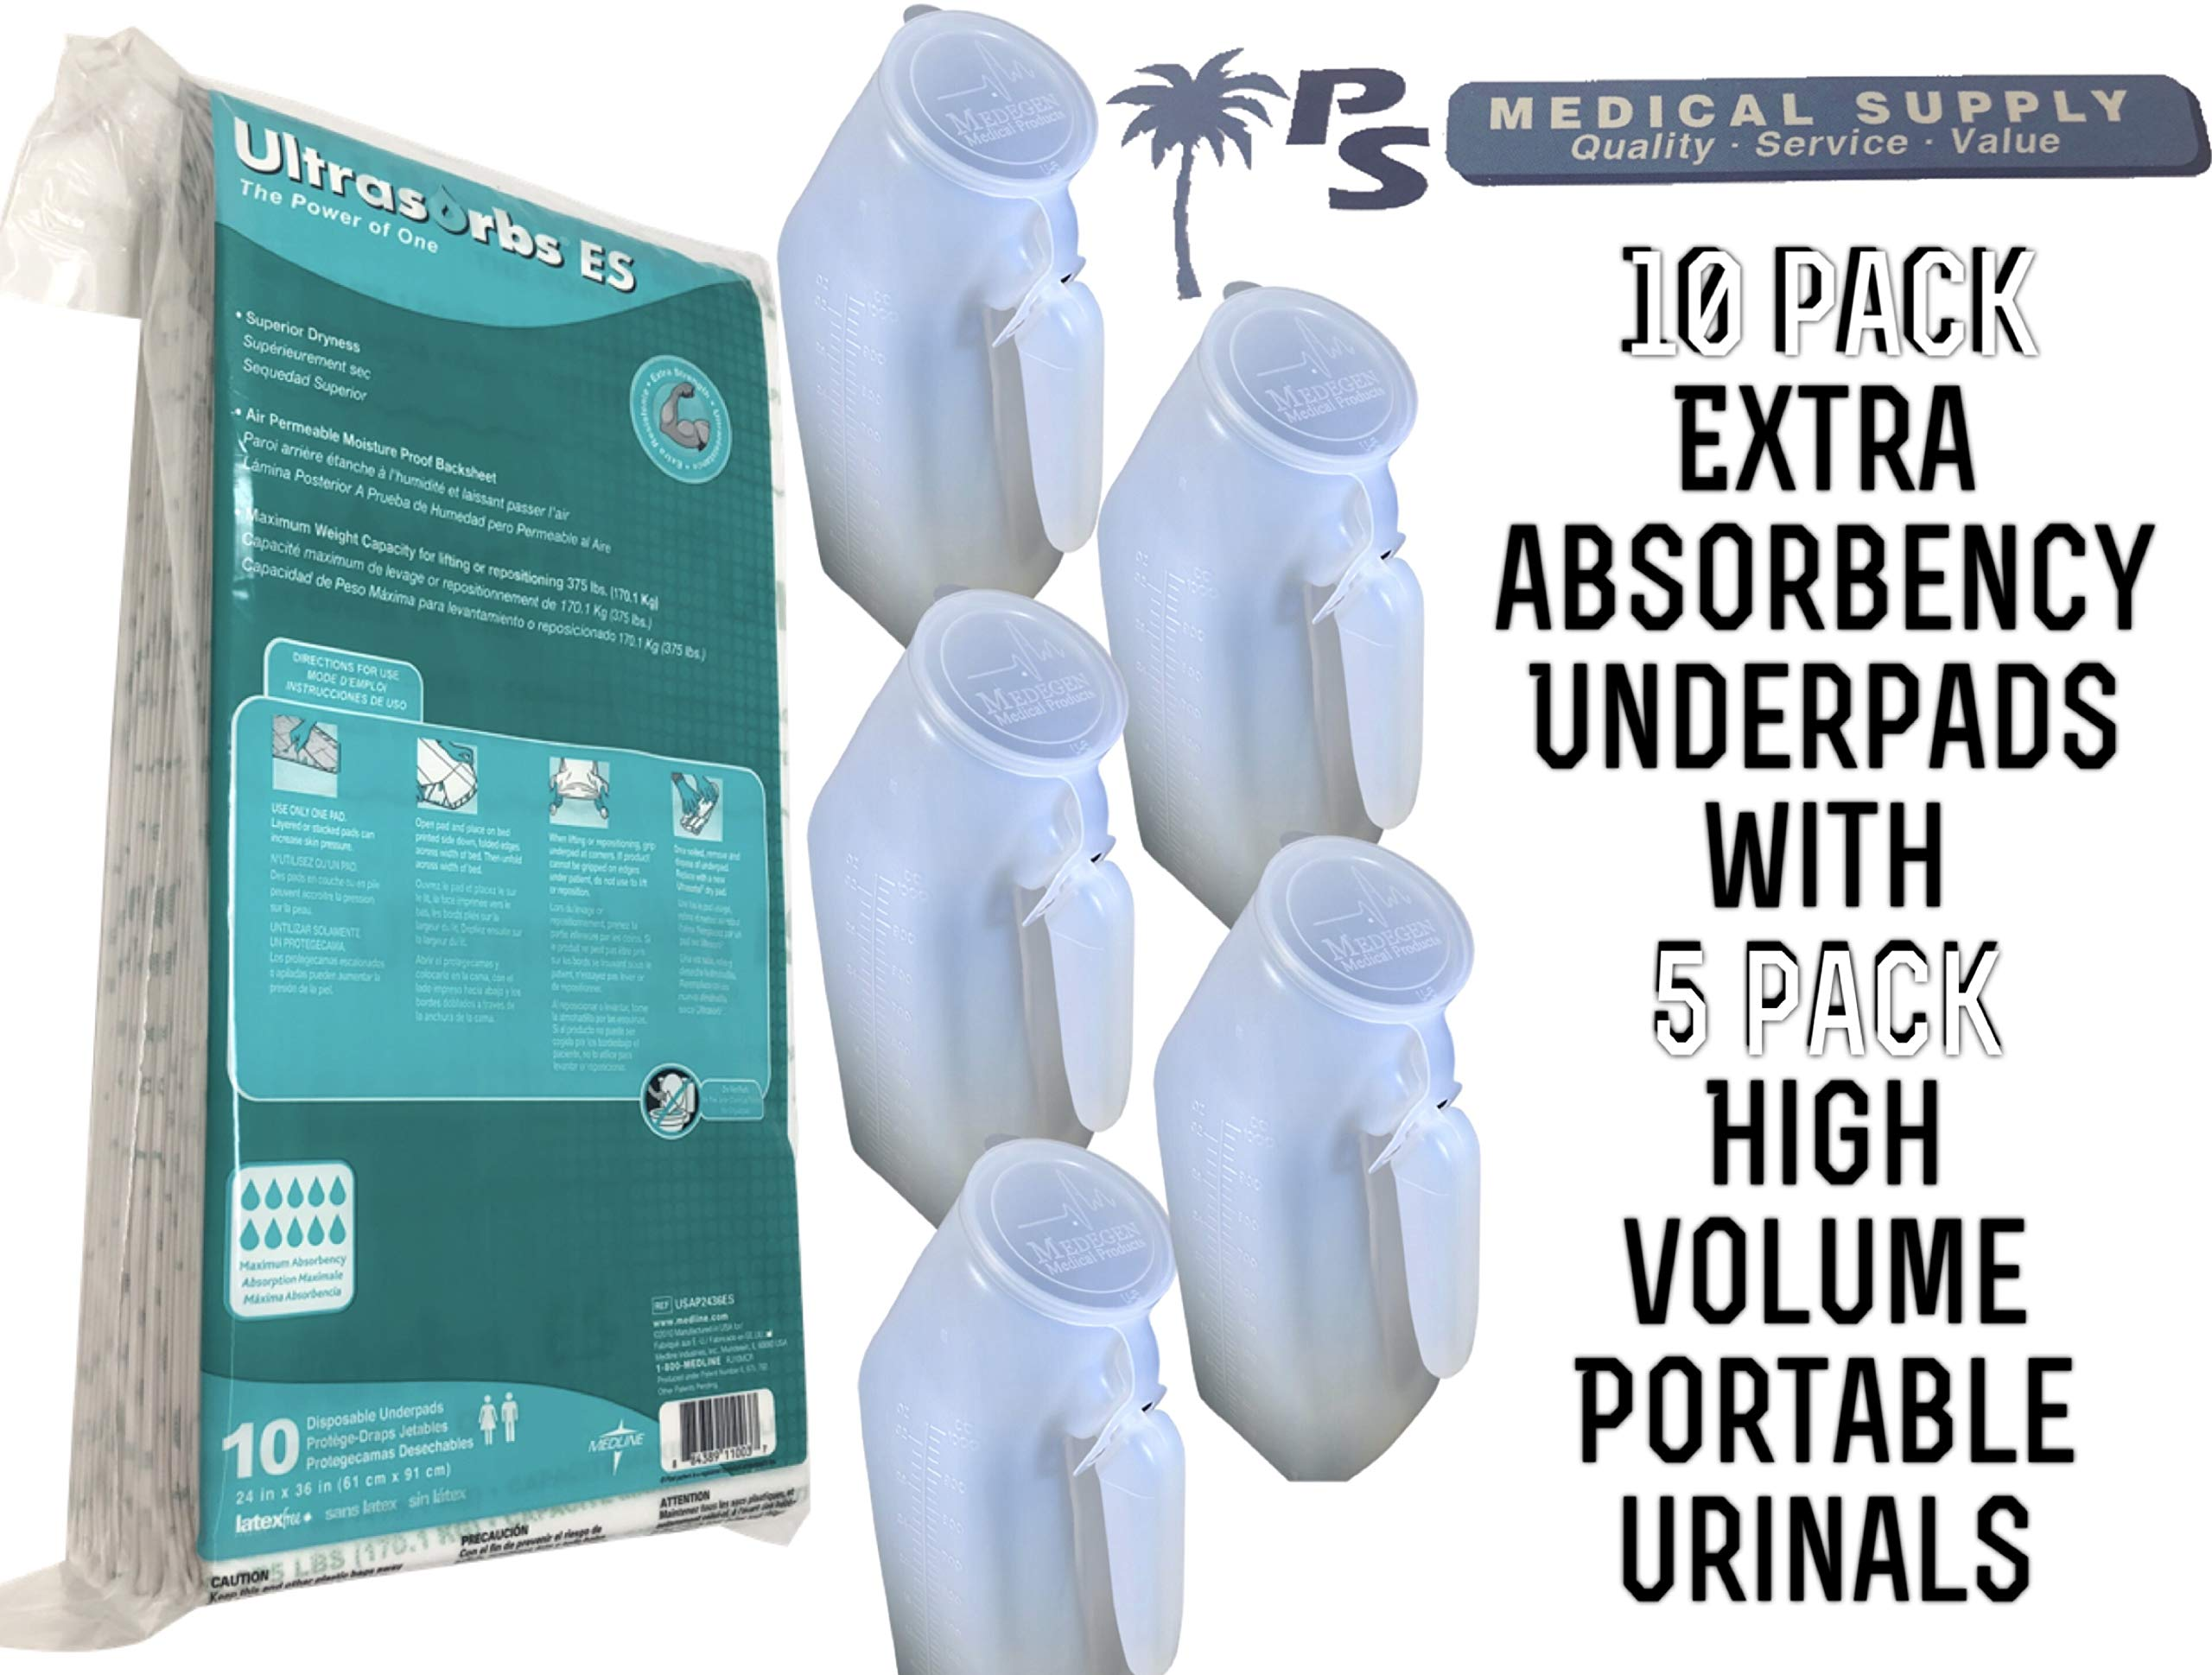 Bedside Table Portable Male High Capacity Urinal System 1000mL (5 Pack) with ExtraAbsorbency Disposable Underpads 24x36 (10 Pack)